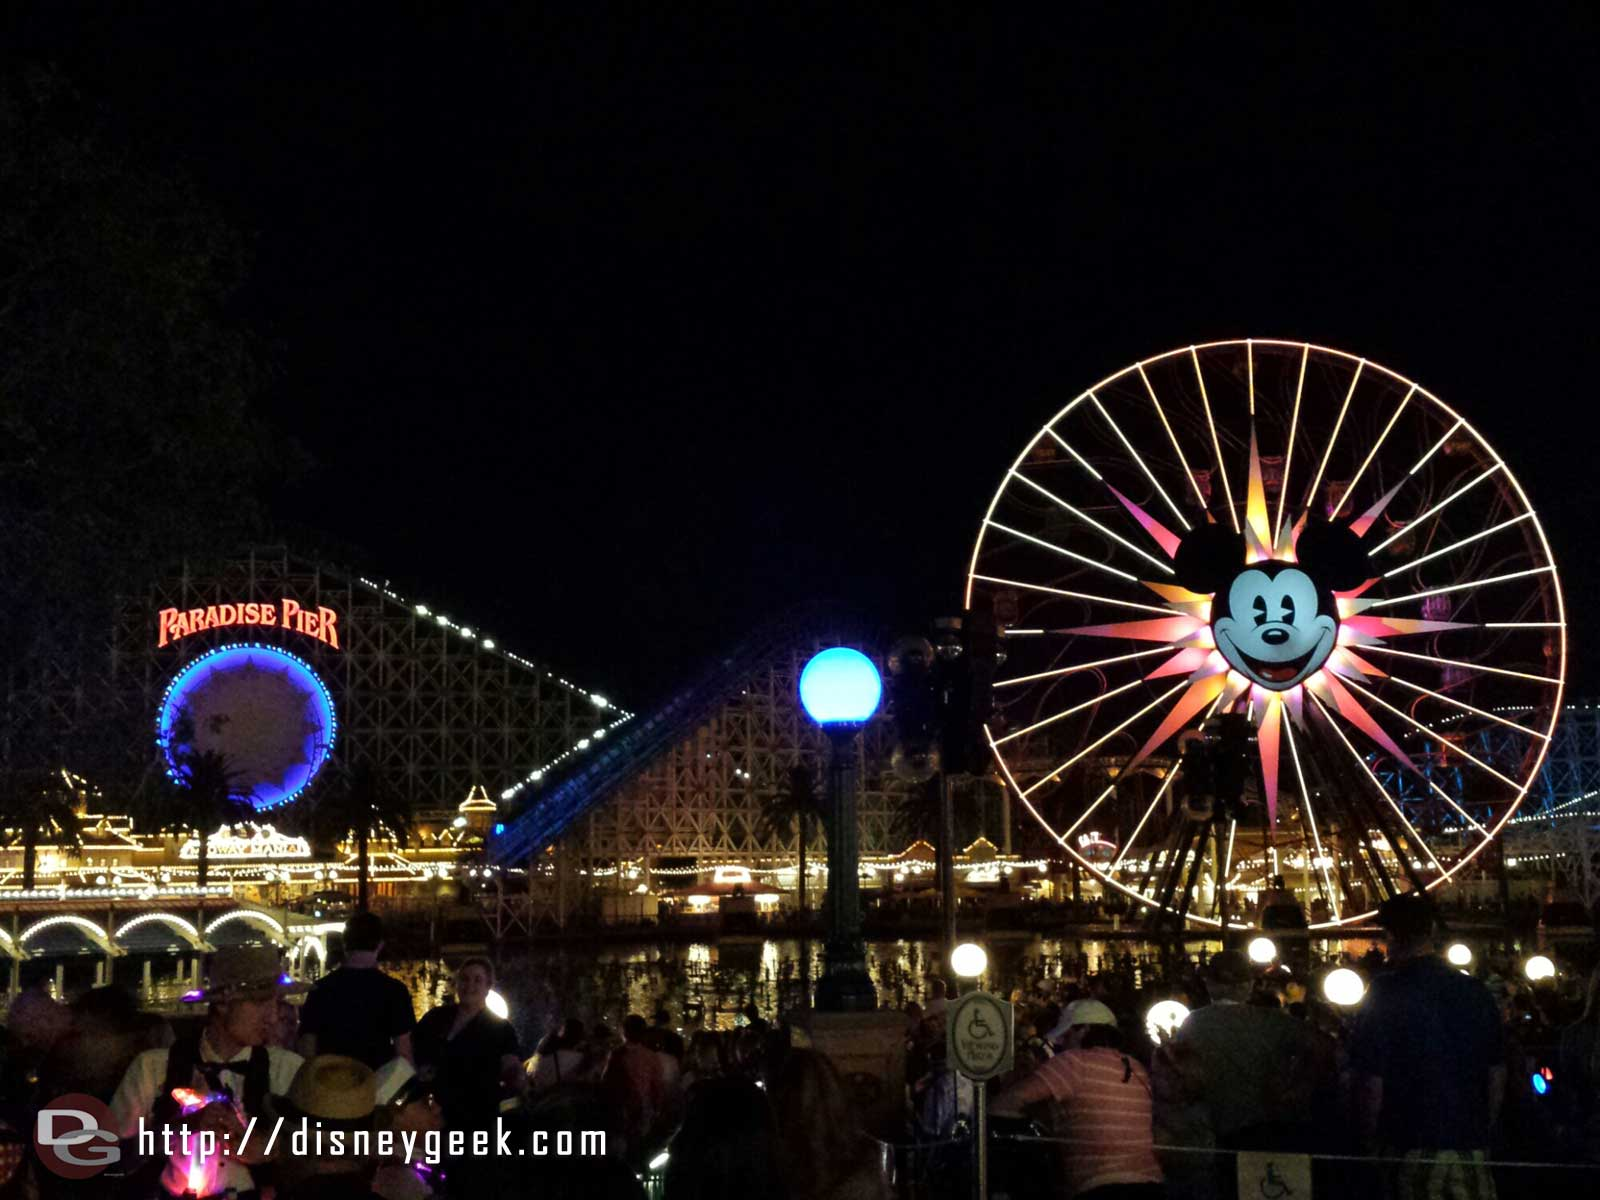 Paradise Pier as I am waiting for World of Color